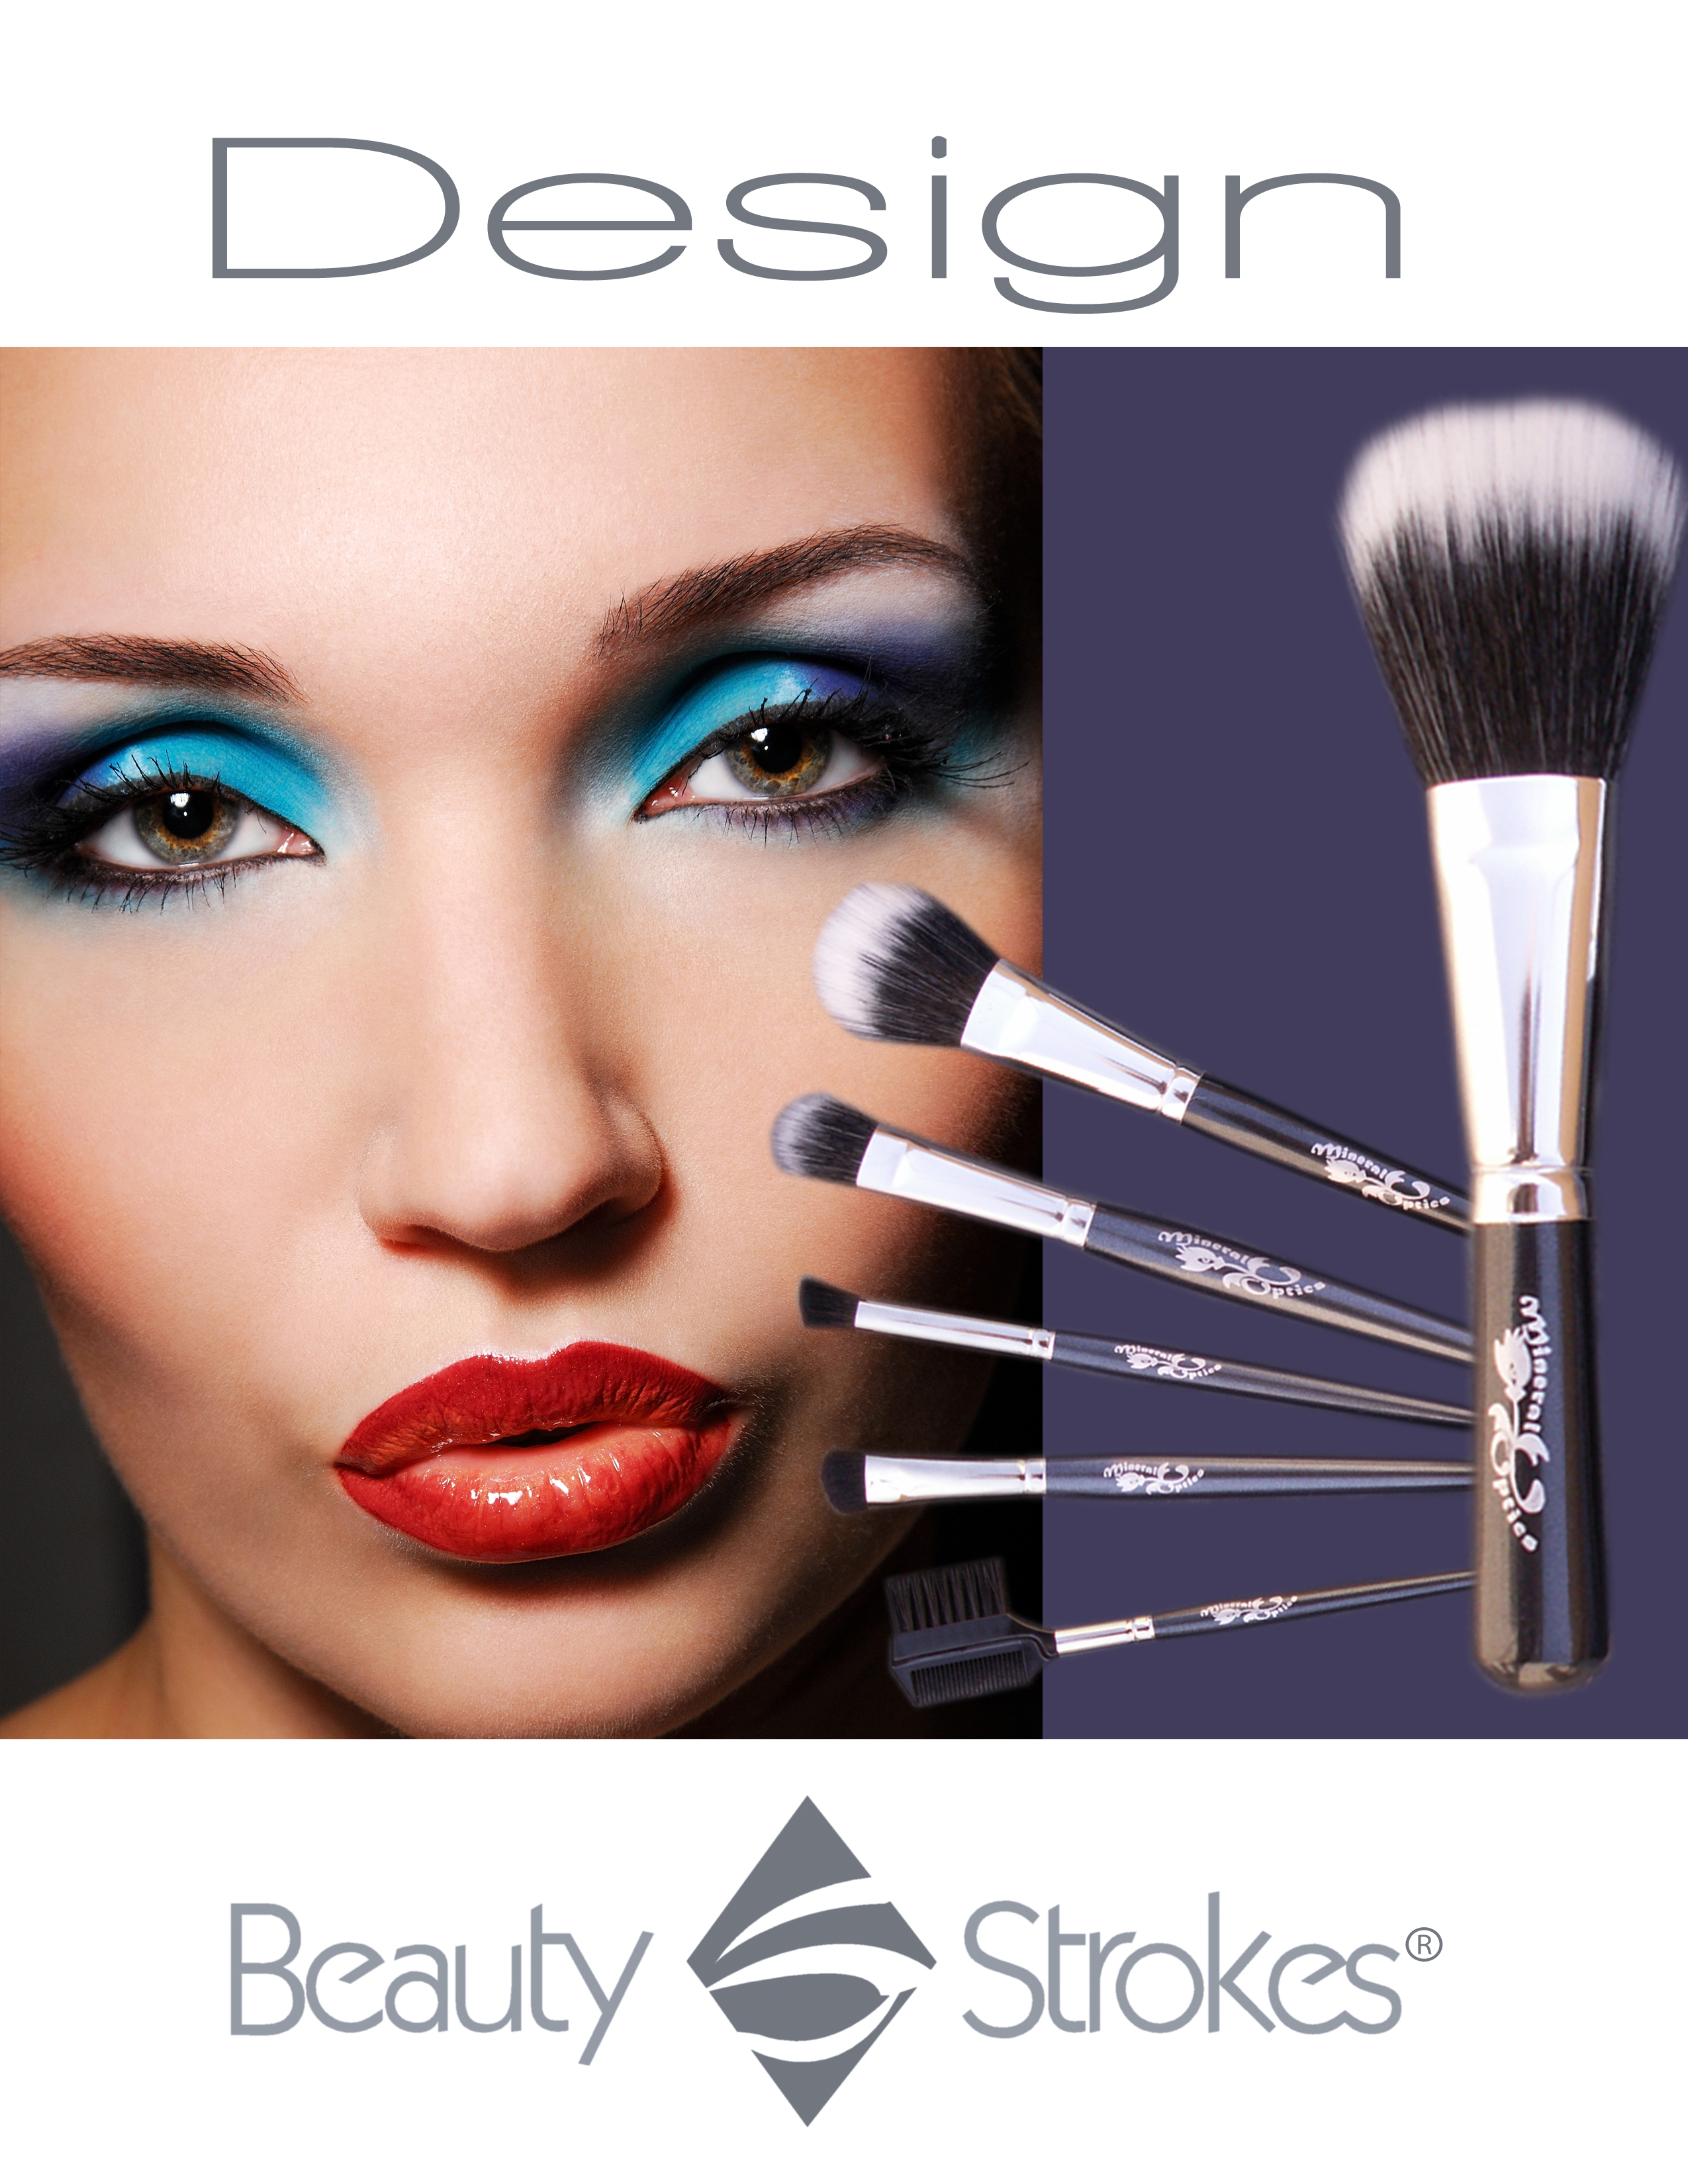 Cosmetics And Makeup: Artistbrushstrokes.com Unveils Completely Redesigned